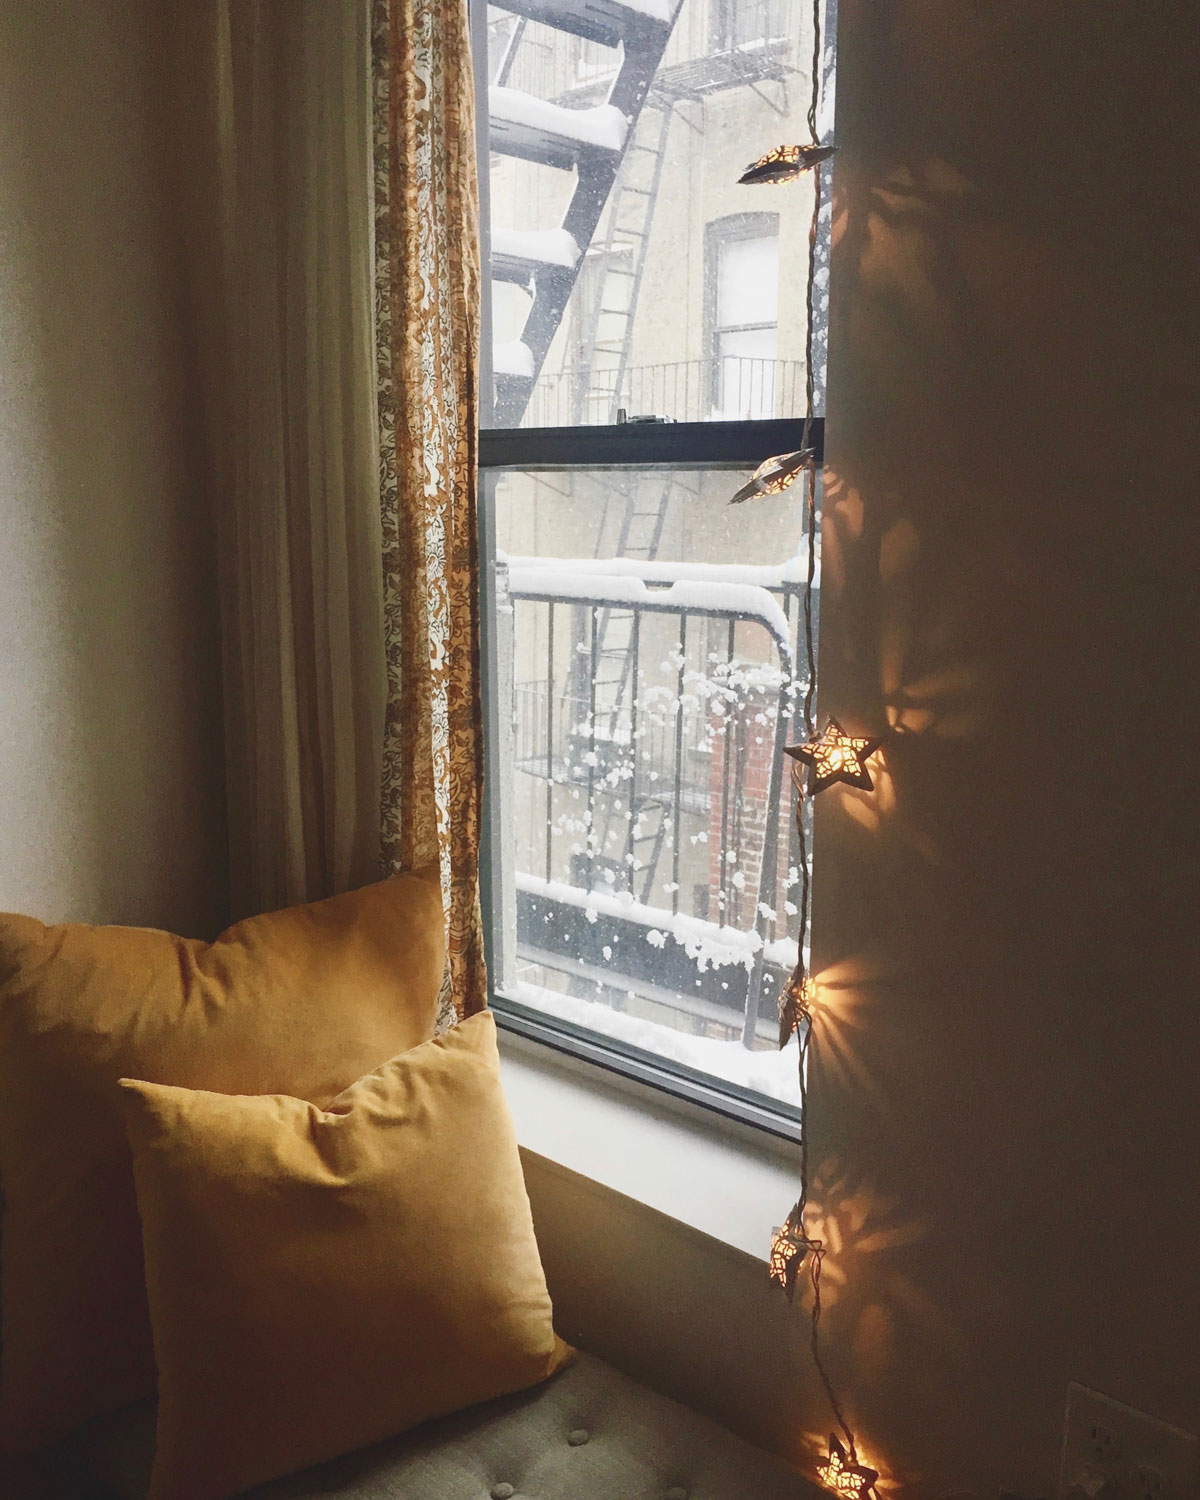 Making-the-most-of-snow-days-in-NYC-via-5thfloorwalkup.com-by-Melina-Peterson.jpg